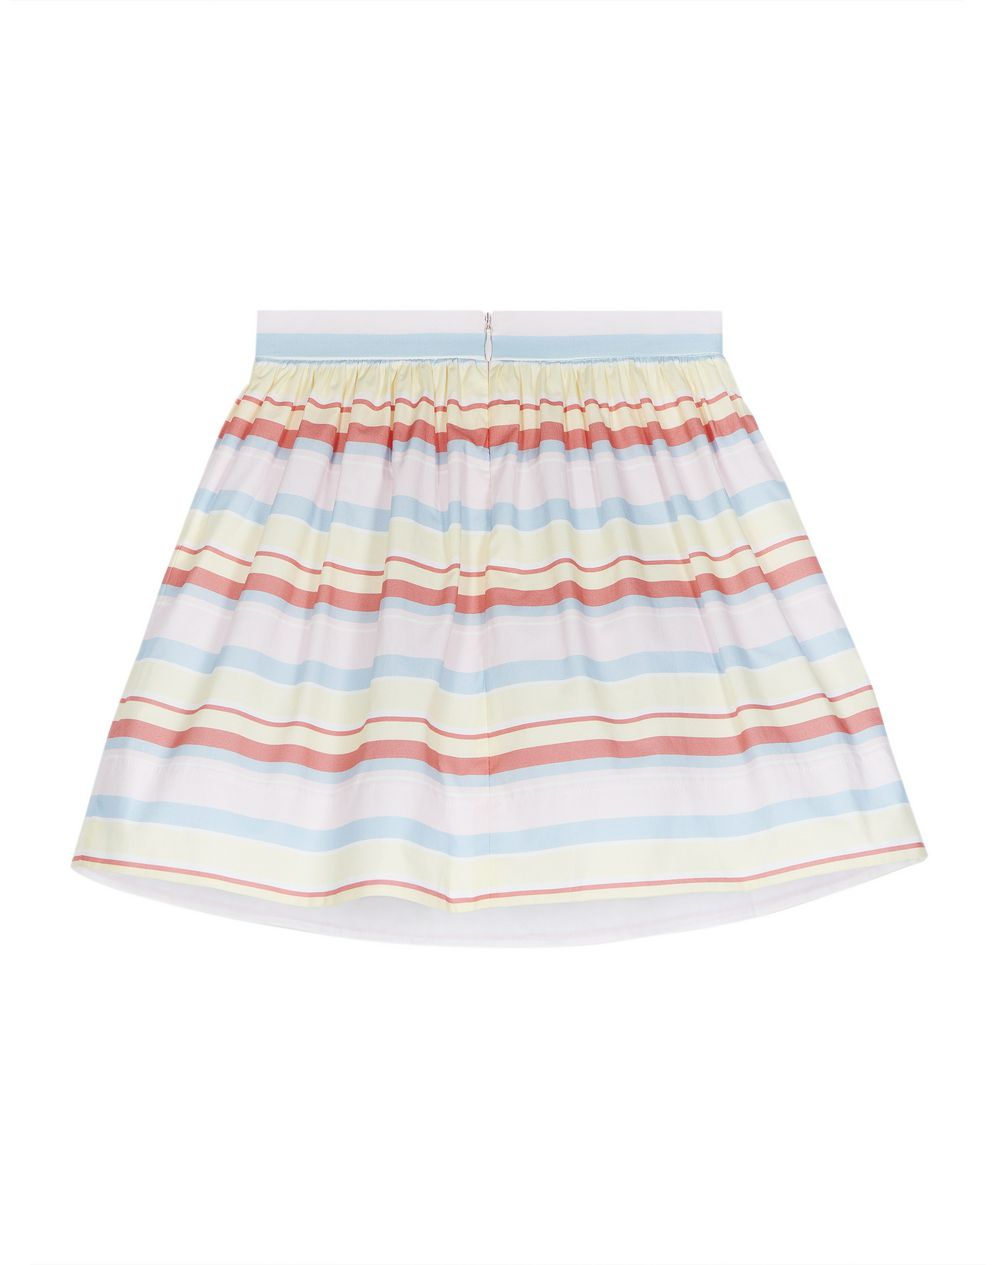 STRIPED SKIRT  - Lanvin